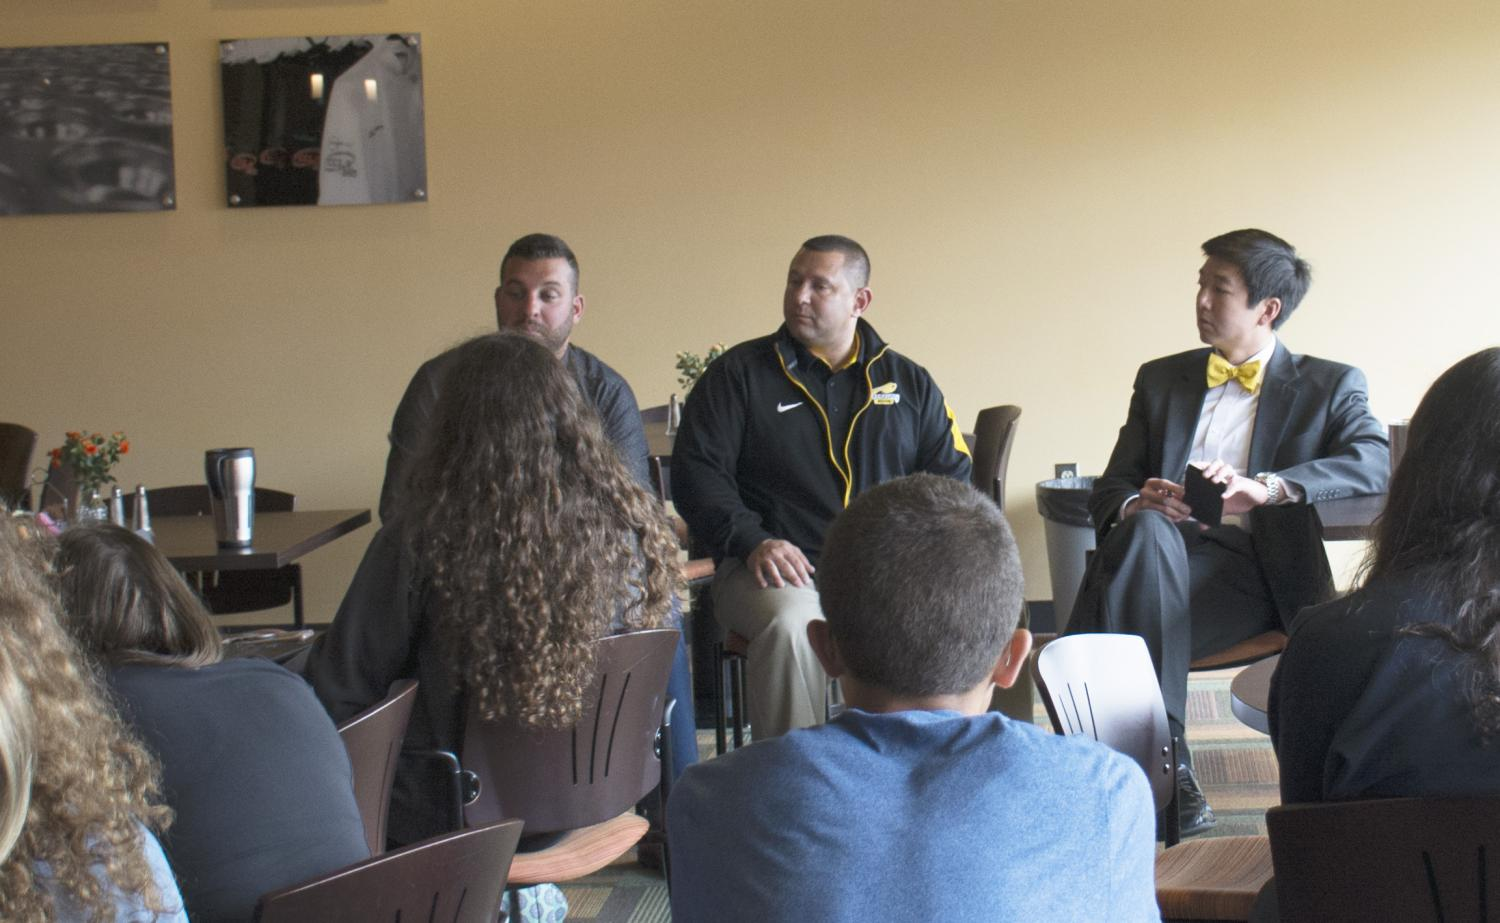 Asst. Principal Ryan Patti, Athletic Director Ryan Peters and Principal Tony Srithai met with students Wednesday for this year's first open forum. Photo by Gabriela Covolan Costa